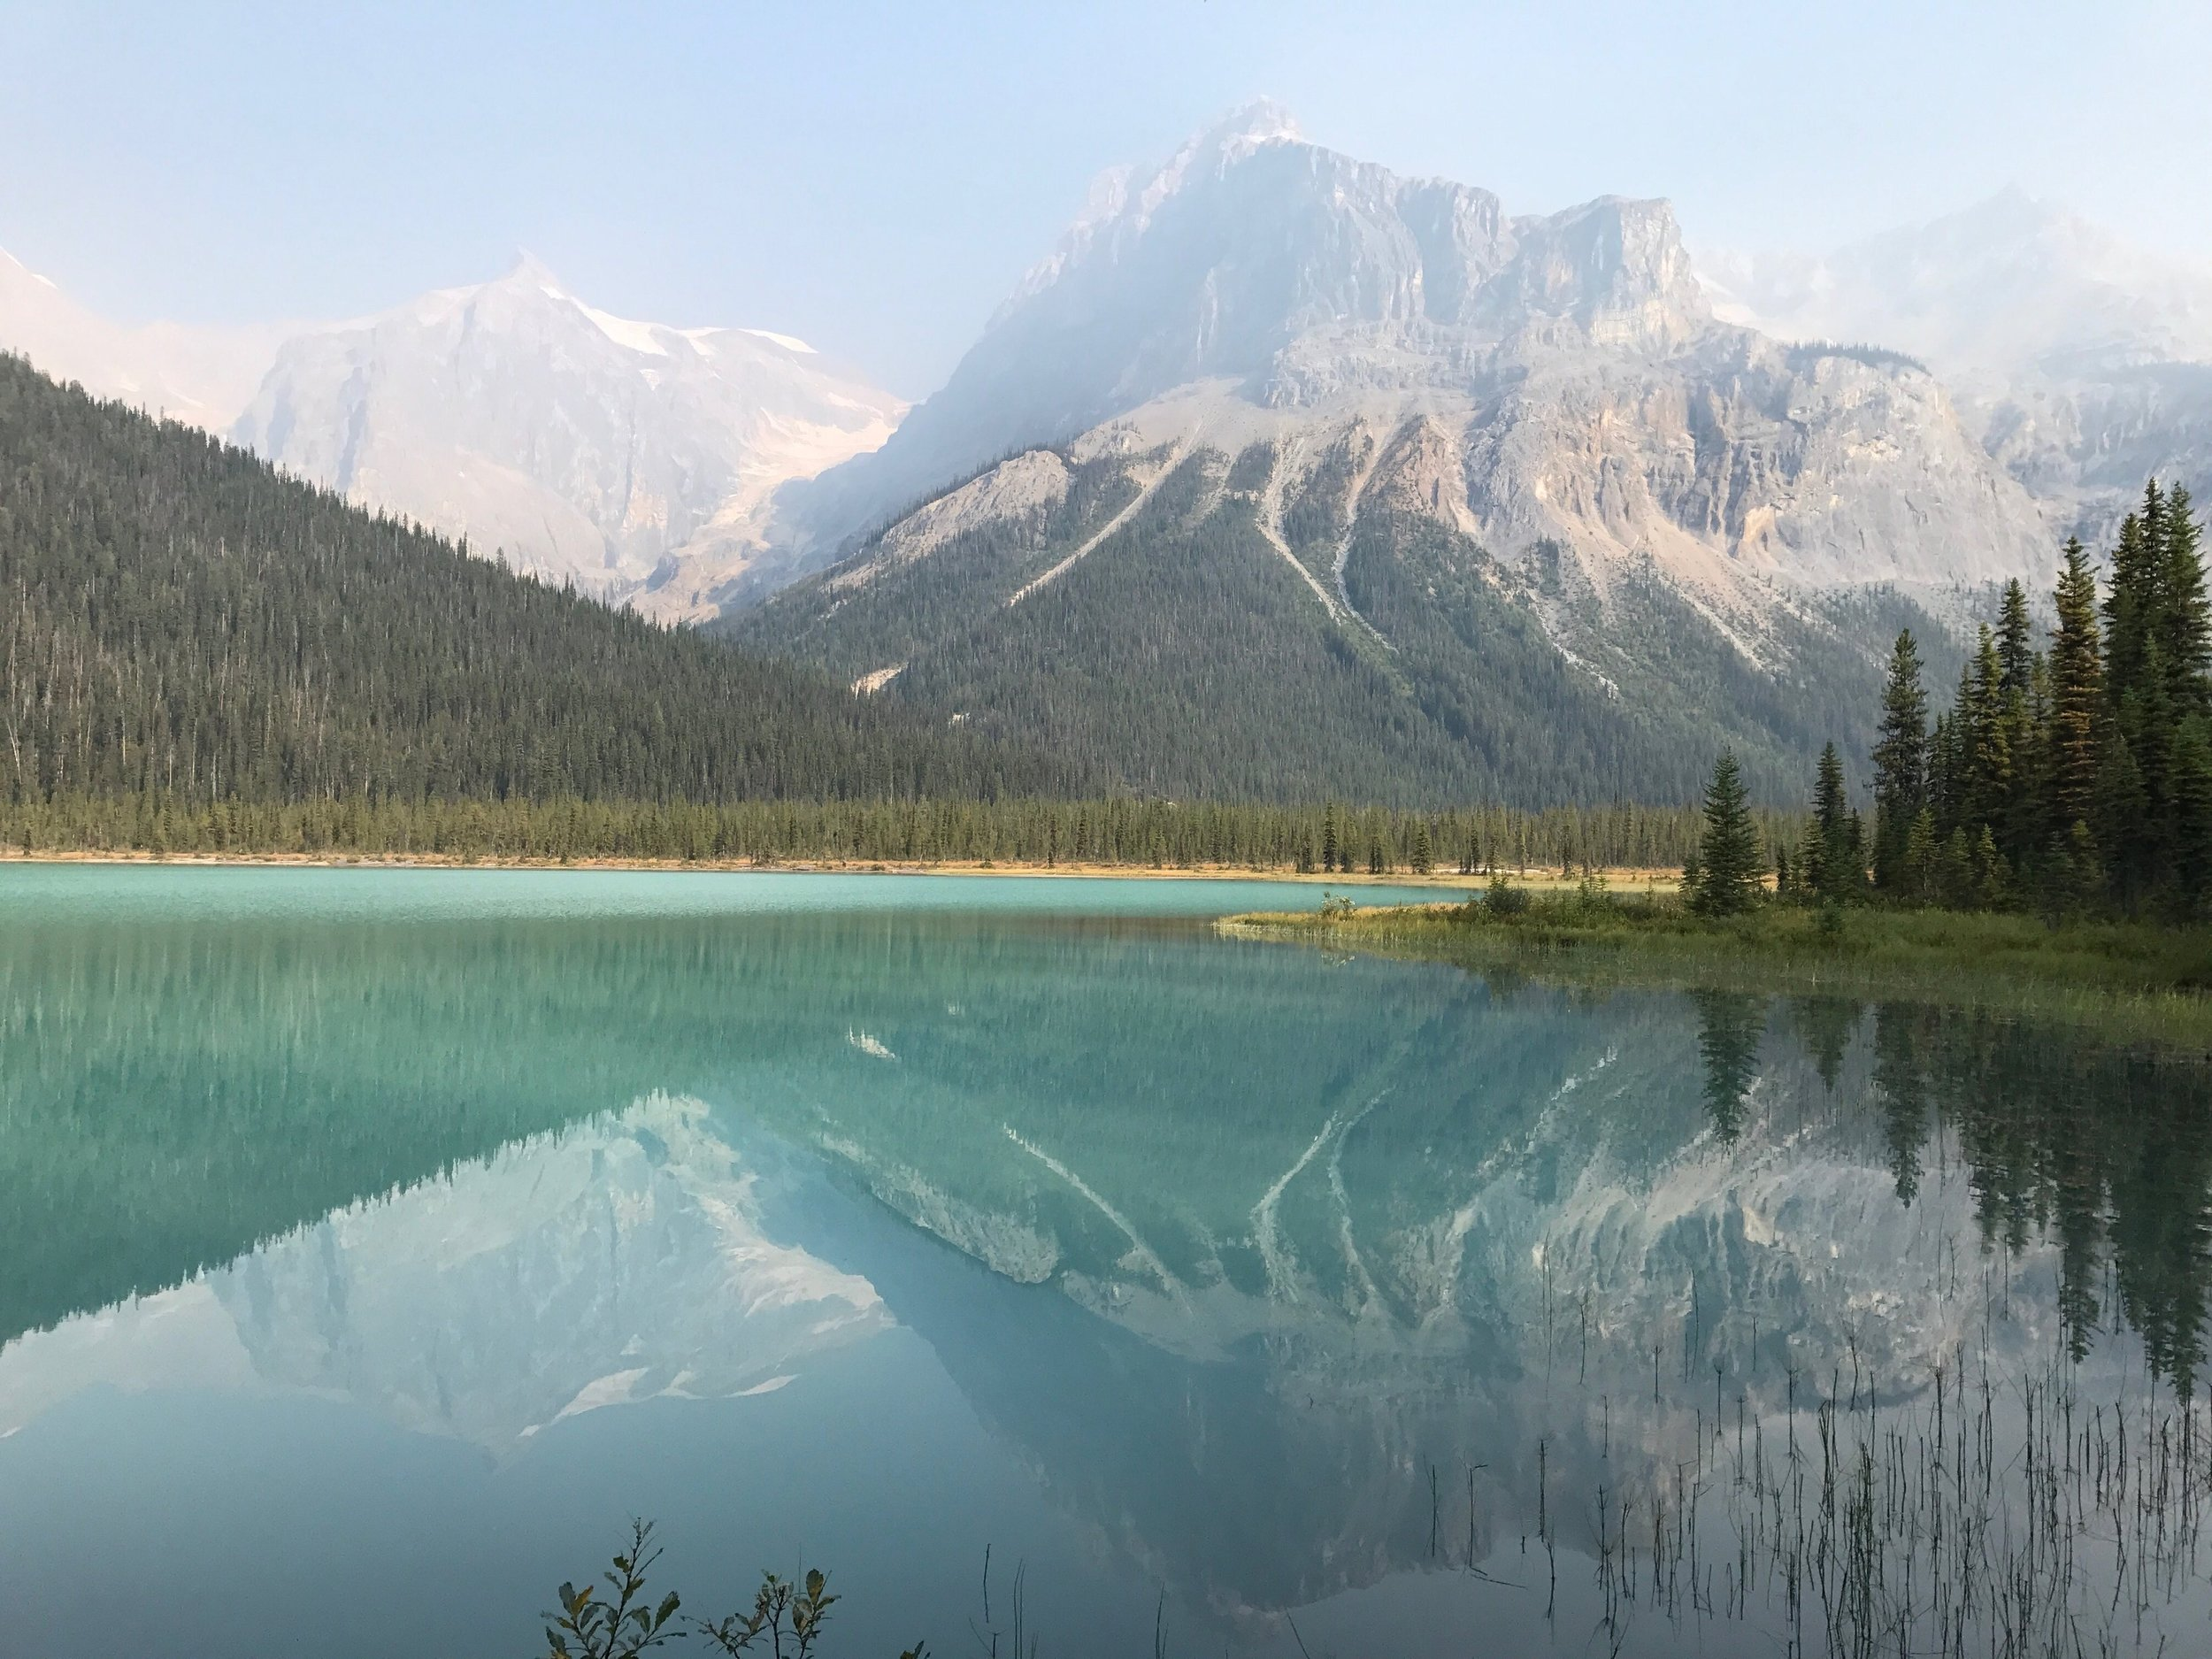 Emerald+Lake+Banff+Yoho+National+Canada+Park+Itinerary+Tour+Guide+Charisma+Shah-2.jpeg